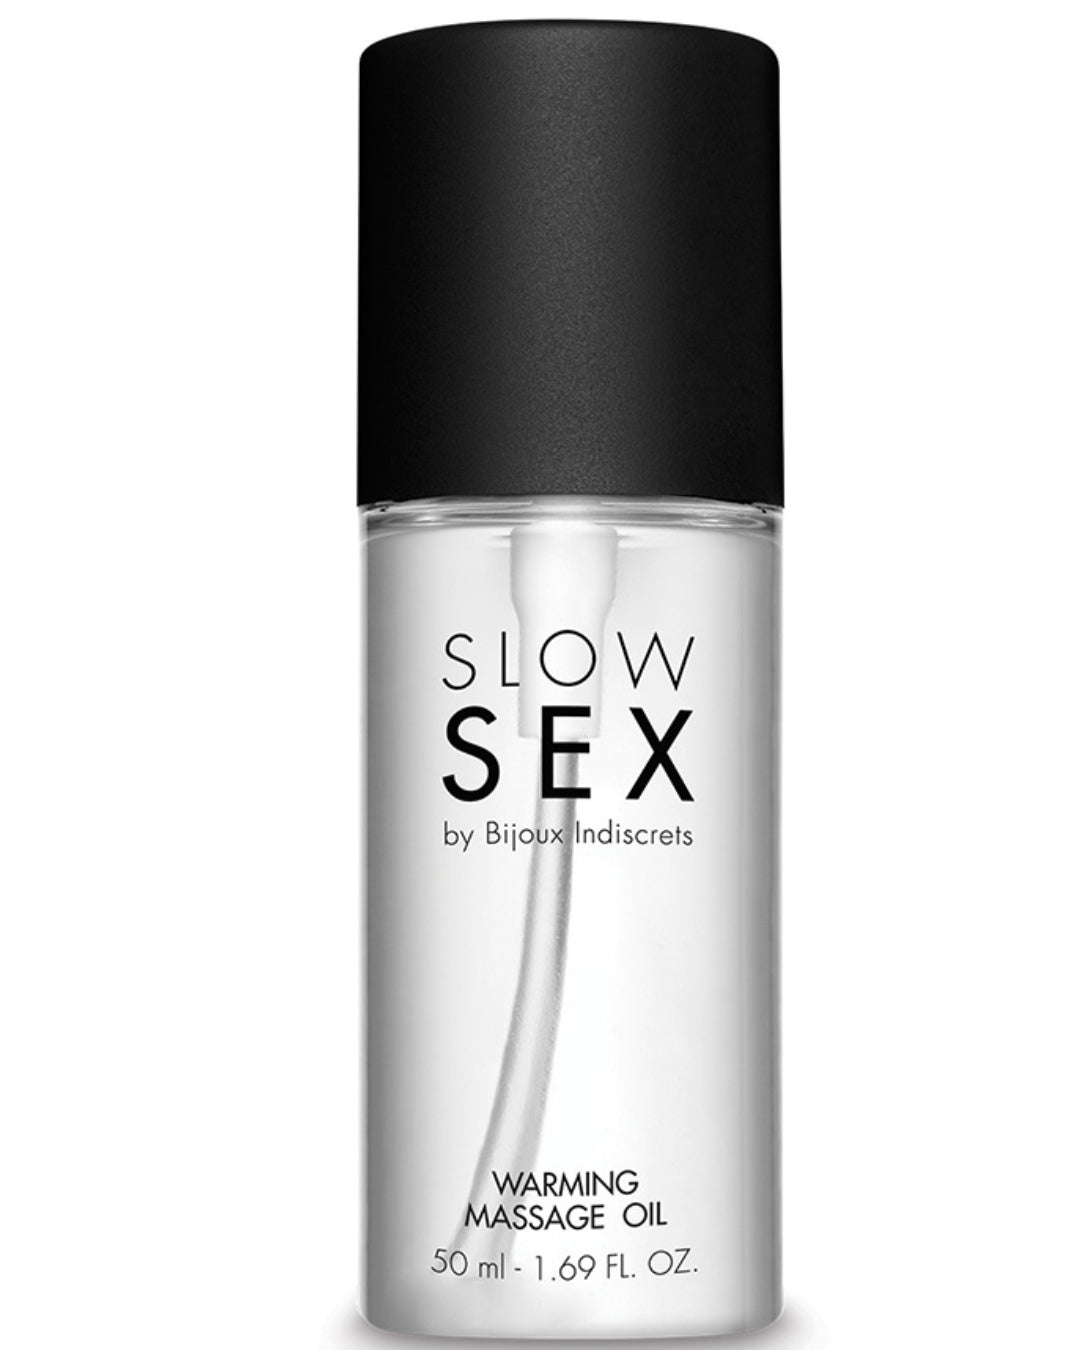 Bijoux Indiscrets Slow Sex Warming Massage Gel Bottle